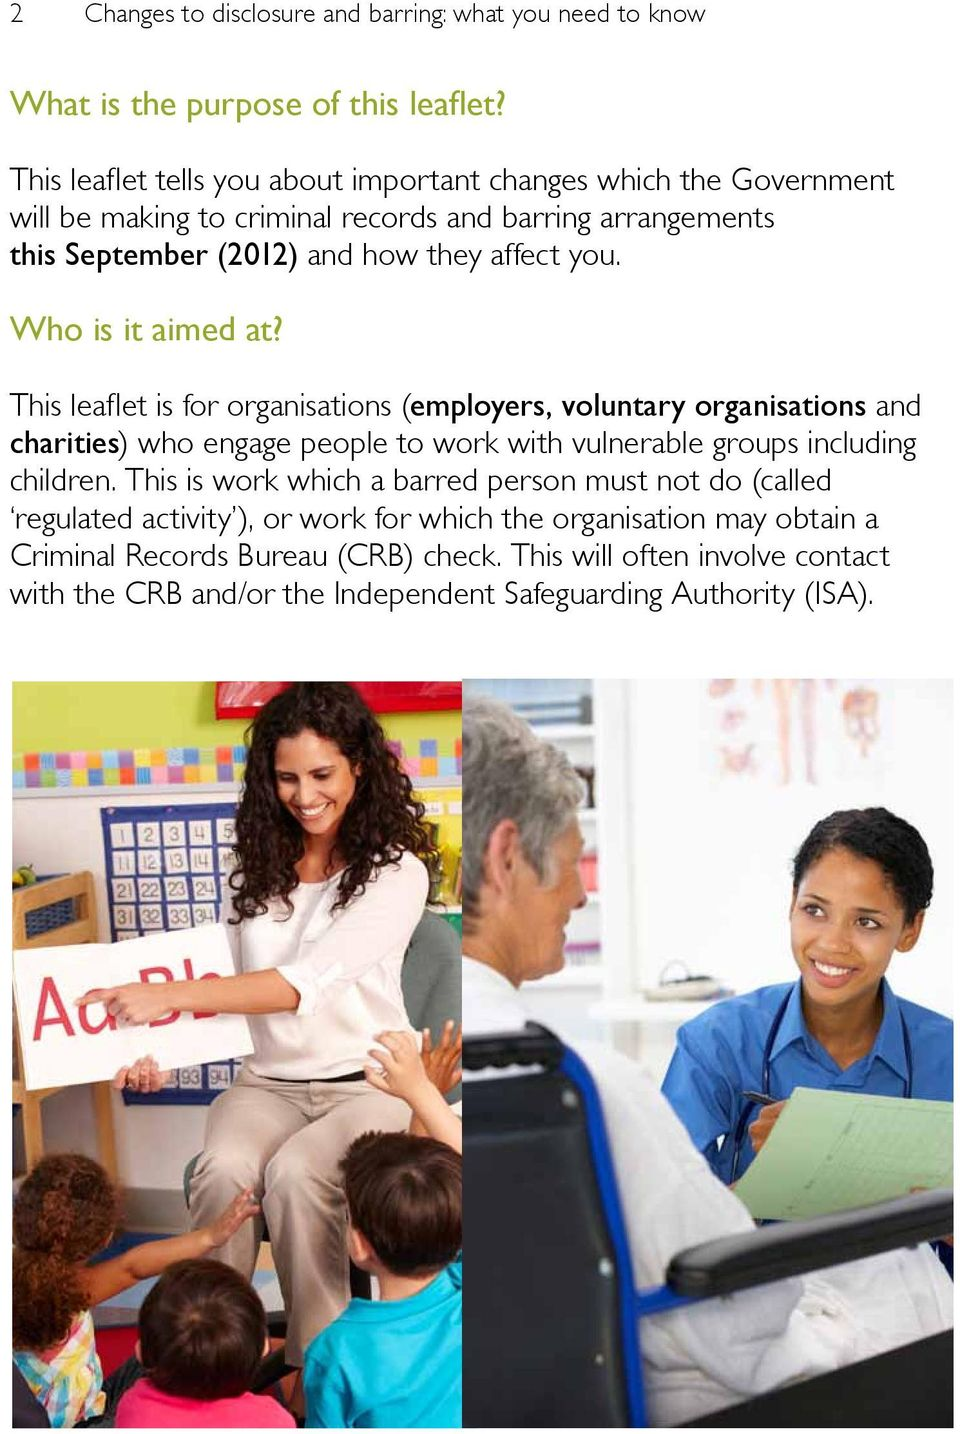 Who is it aimed at? This leaflet is for organisations (employers, voluntary organisations and charities) who engage people to work with vulnerable groups including children.